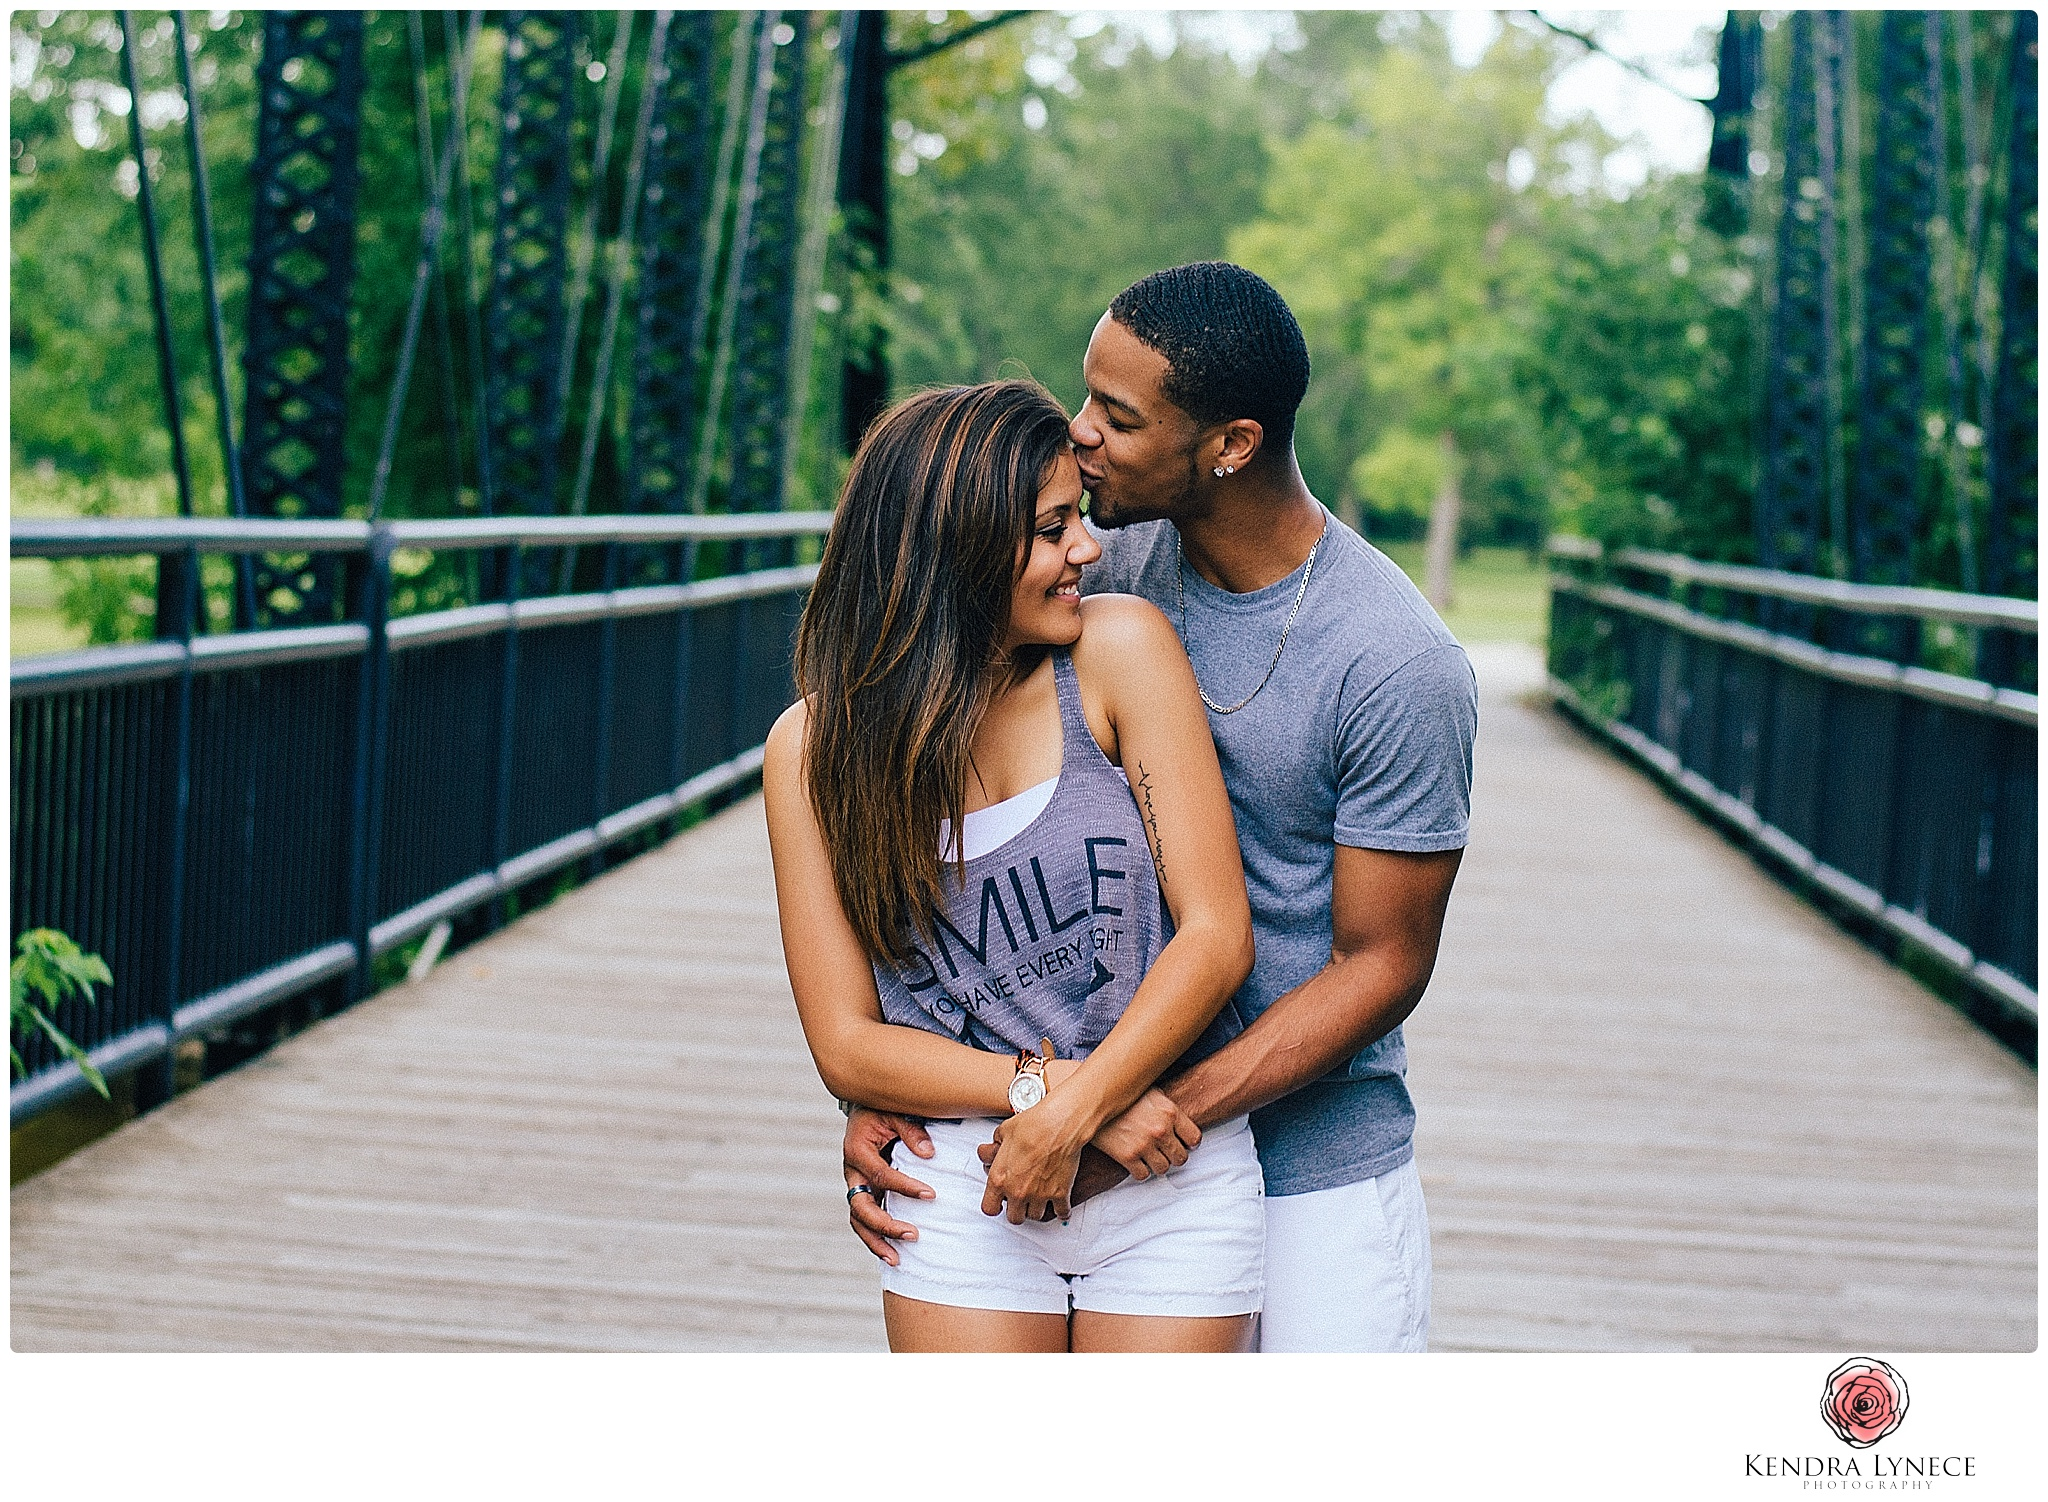 byhalia christian women dating site Connecting singles is a 100% free online dating site where you can make friends and meet mississippi singles find an activity partner, new friends, a cool date or a soulmate, for a casual or long term relationship.